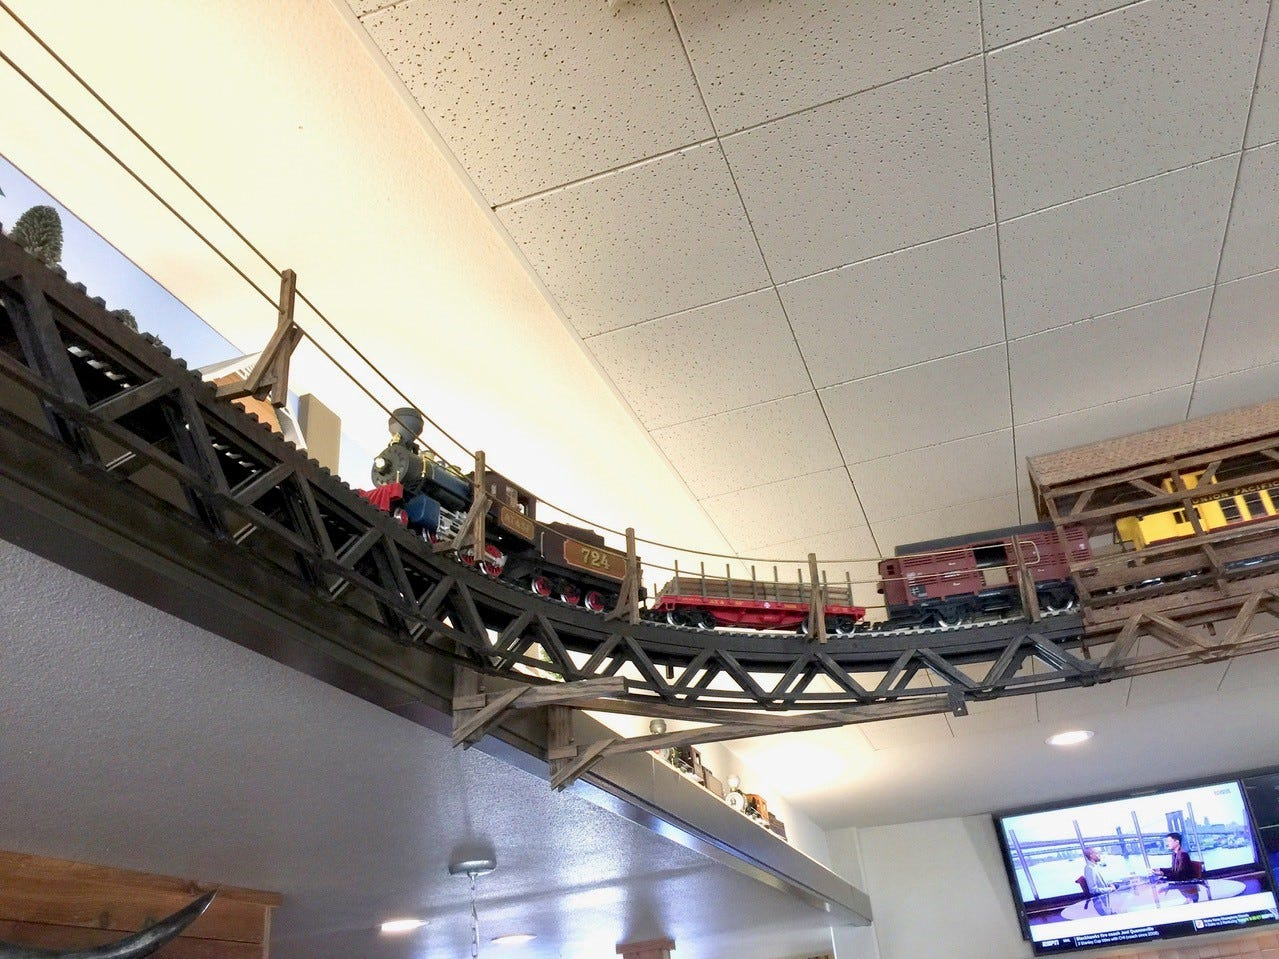 A fun feature of Jeff's California Cattle Company is this model train,  which circles on tracks above the dining room.